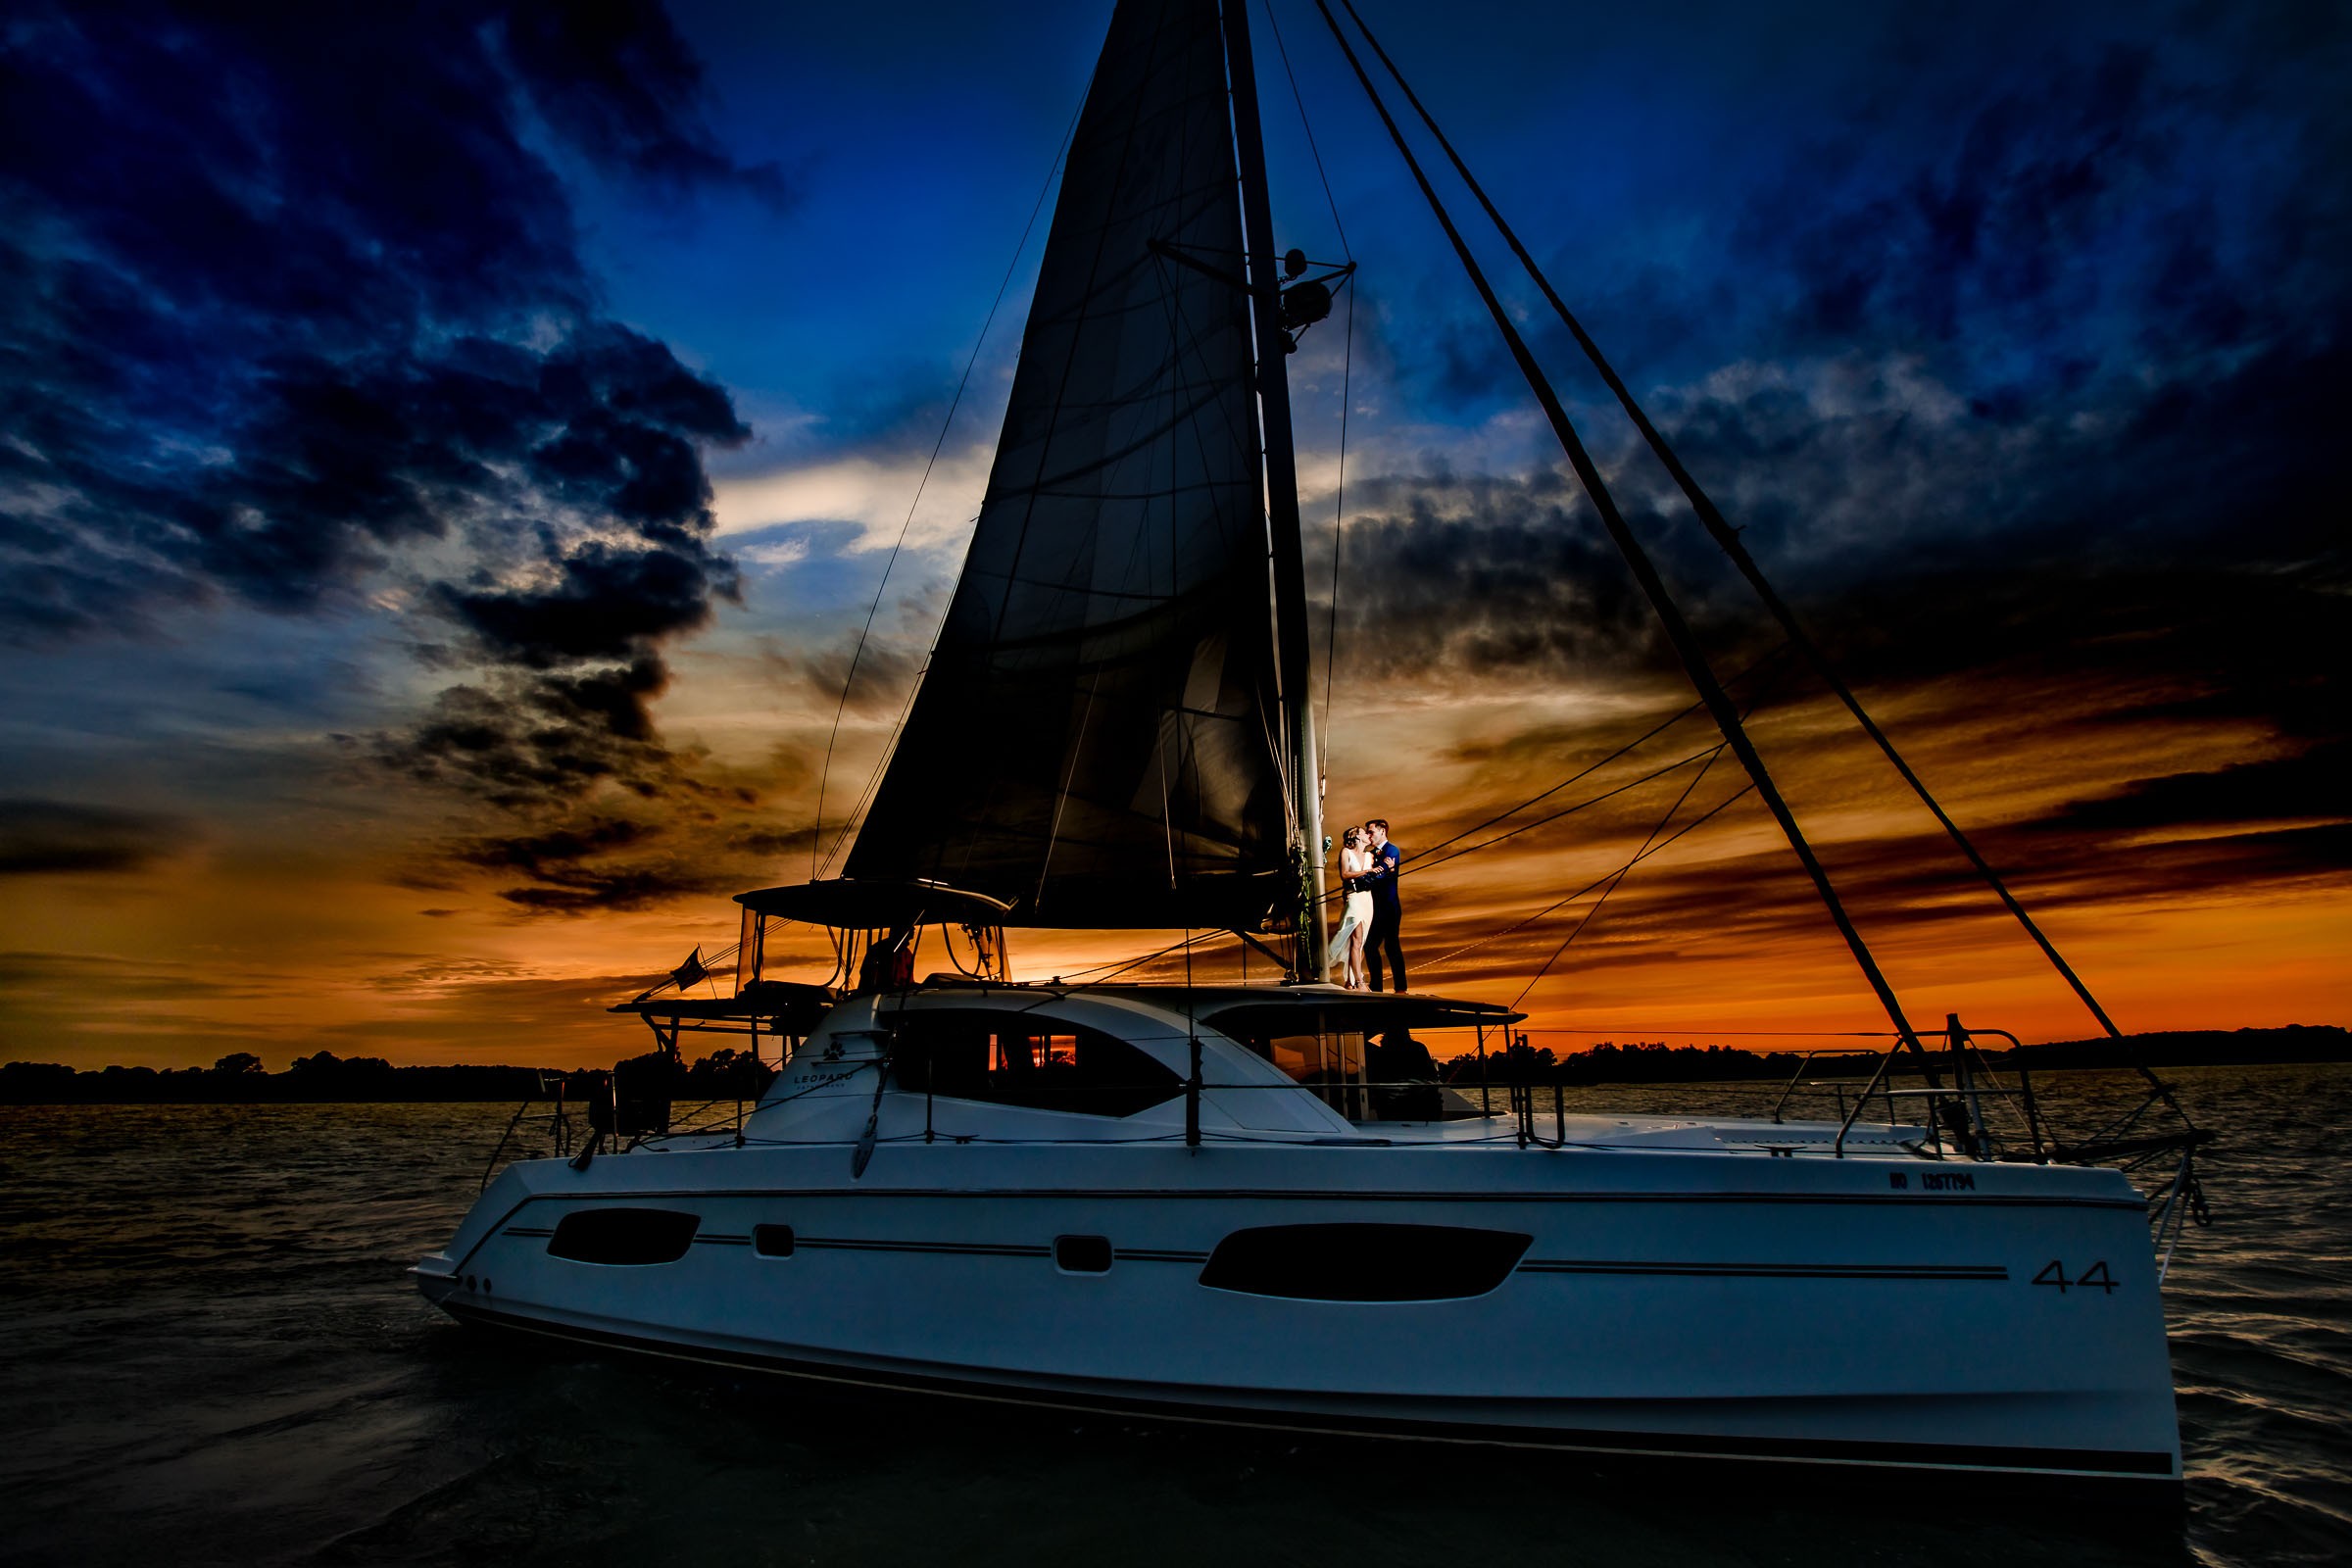 Couple on catamaran at sunset - photo by JOS & TREE